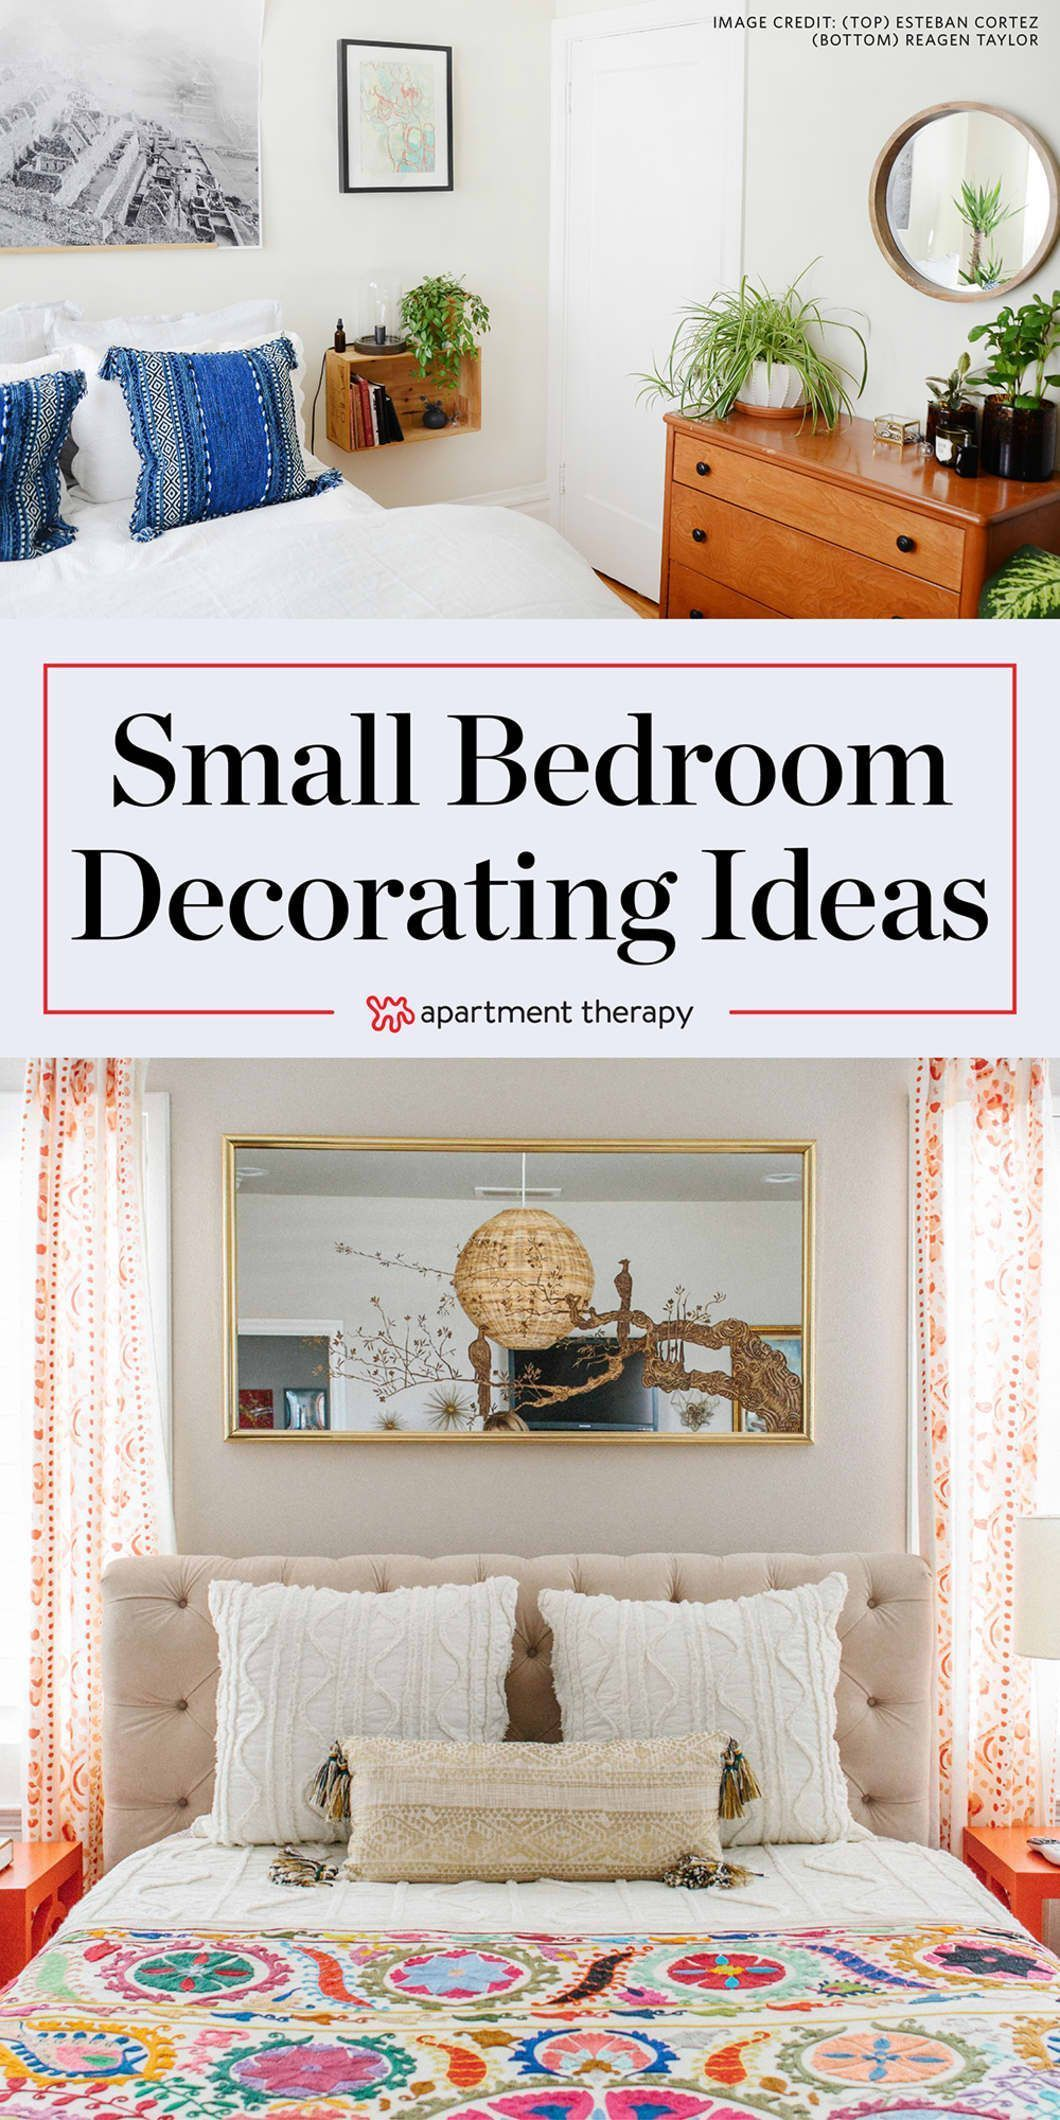 Space Saving Ideas For Small Bedroom Apartment Therapy Small Bedroom Decor I Apar Small Bedroom Decor Apartment Therapy Small Spaces Small Guest Bedroom